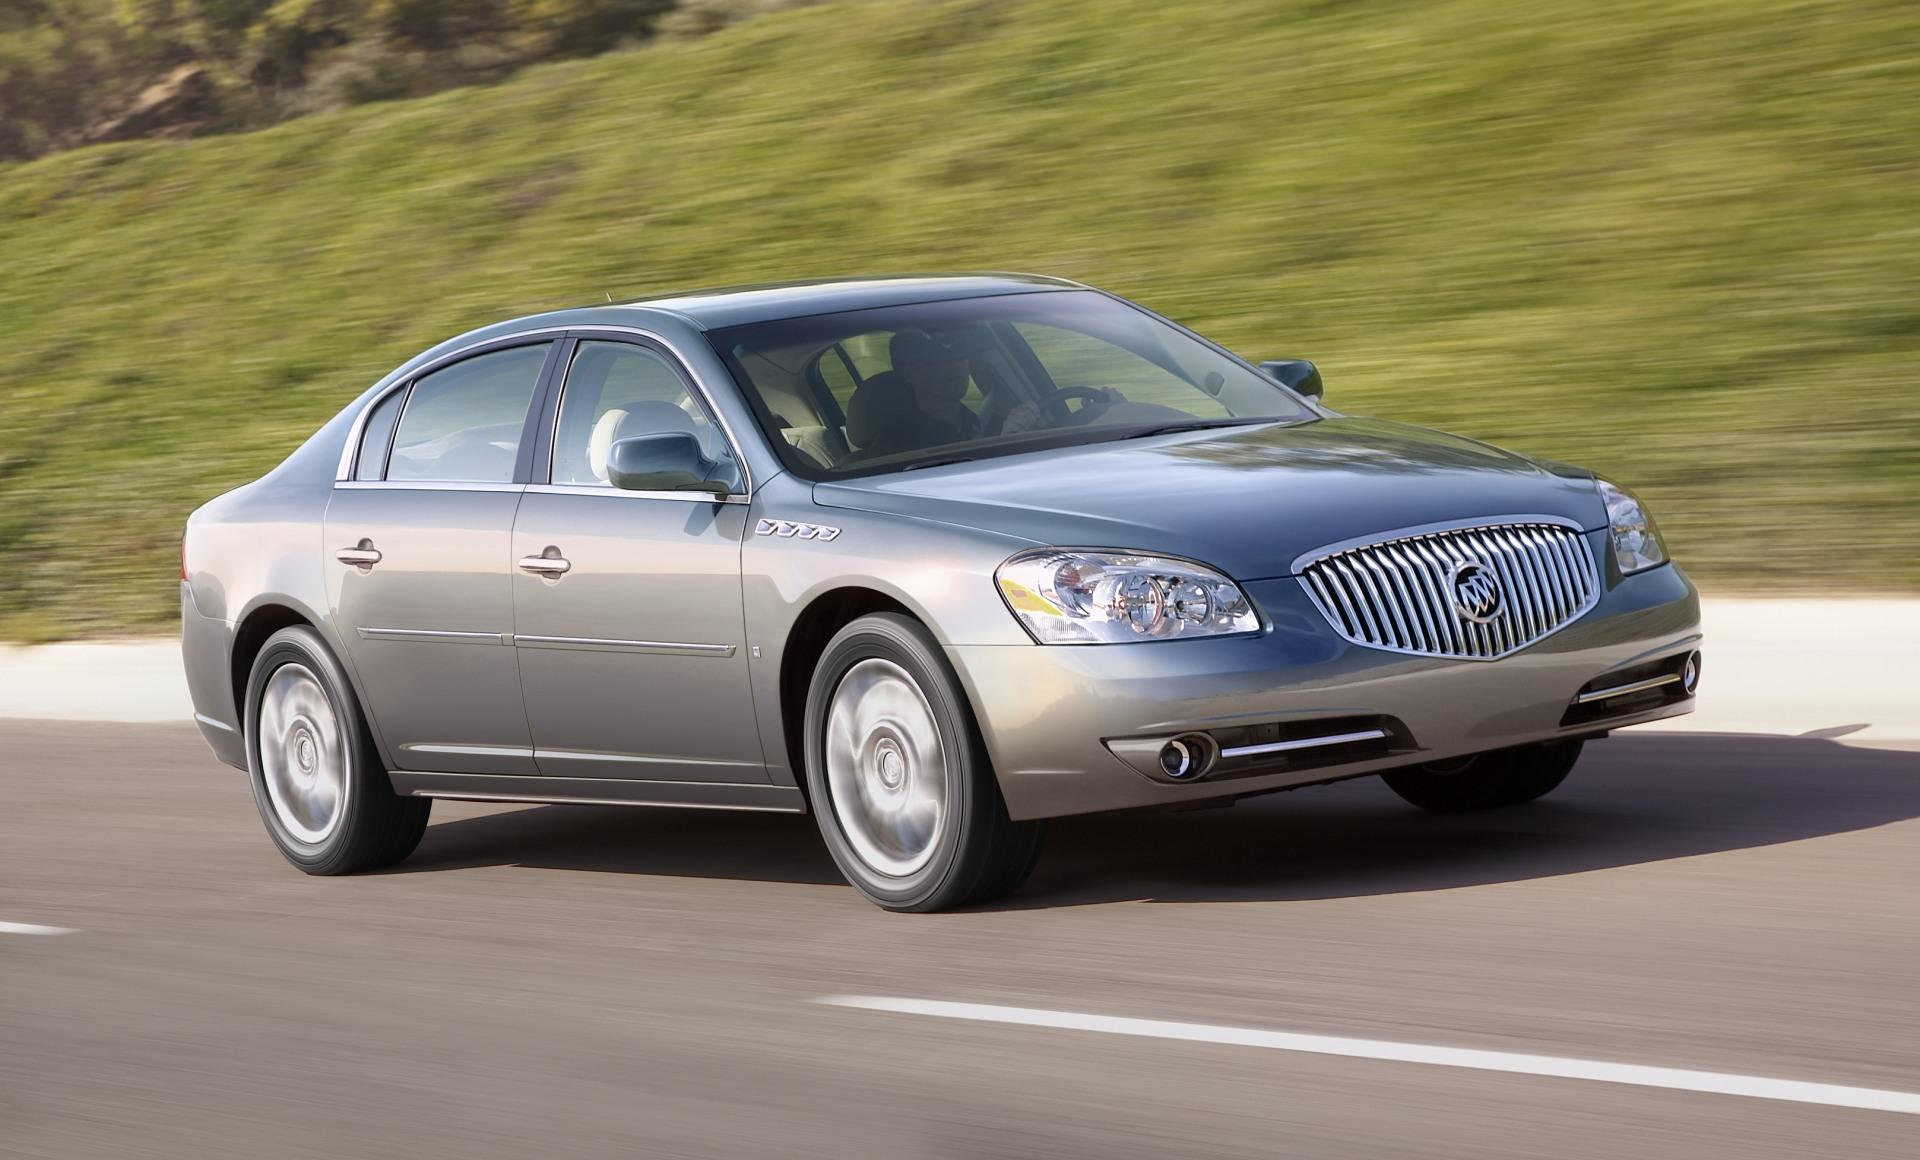 2006 Buick Lucerne Recalls >> 2010 Buick Lucerne Technical Specifications and data. Engine, Dimensions and Mechanical details ...